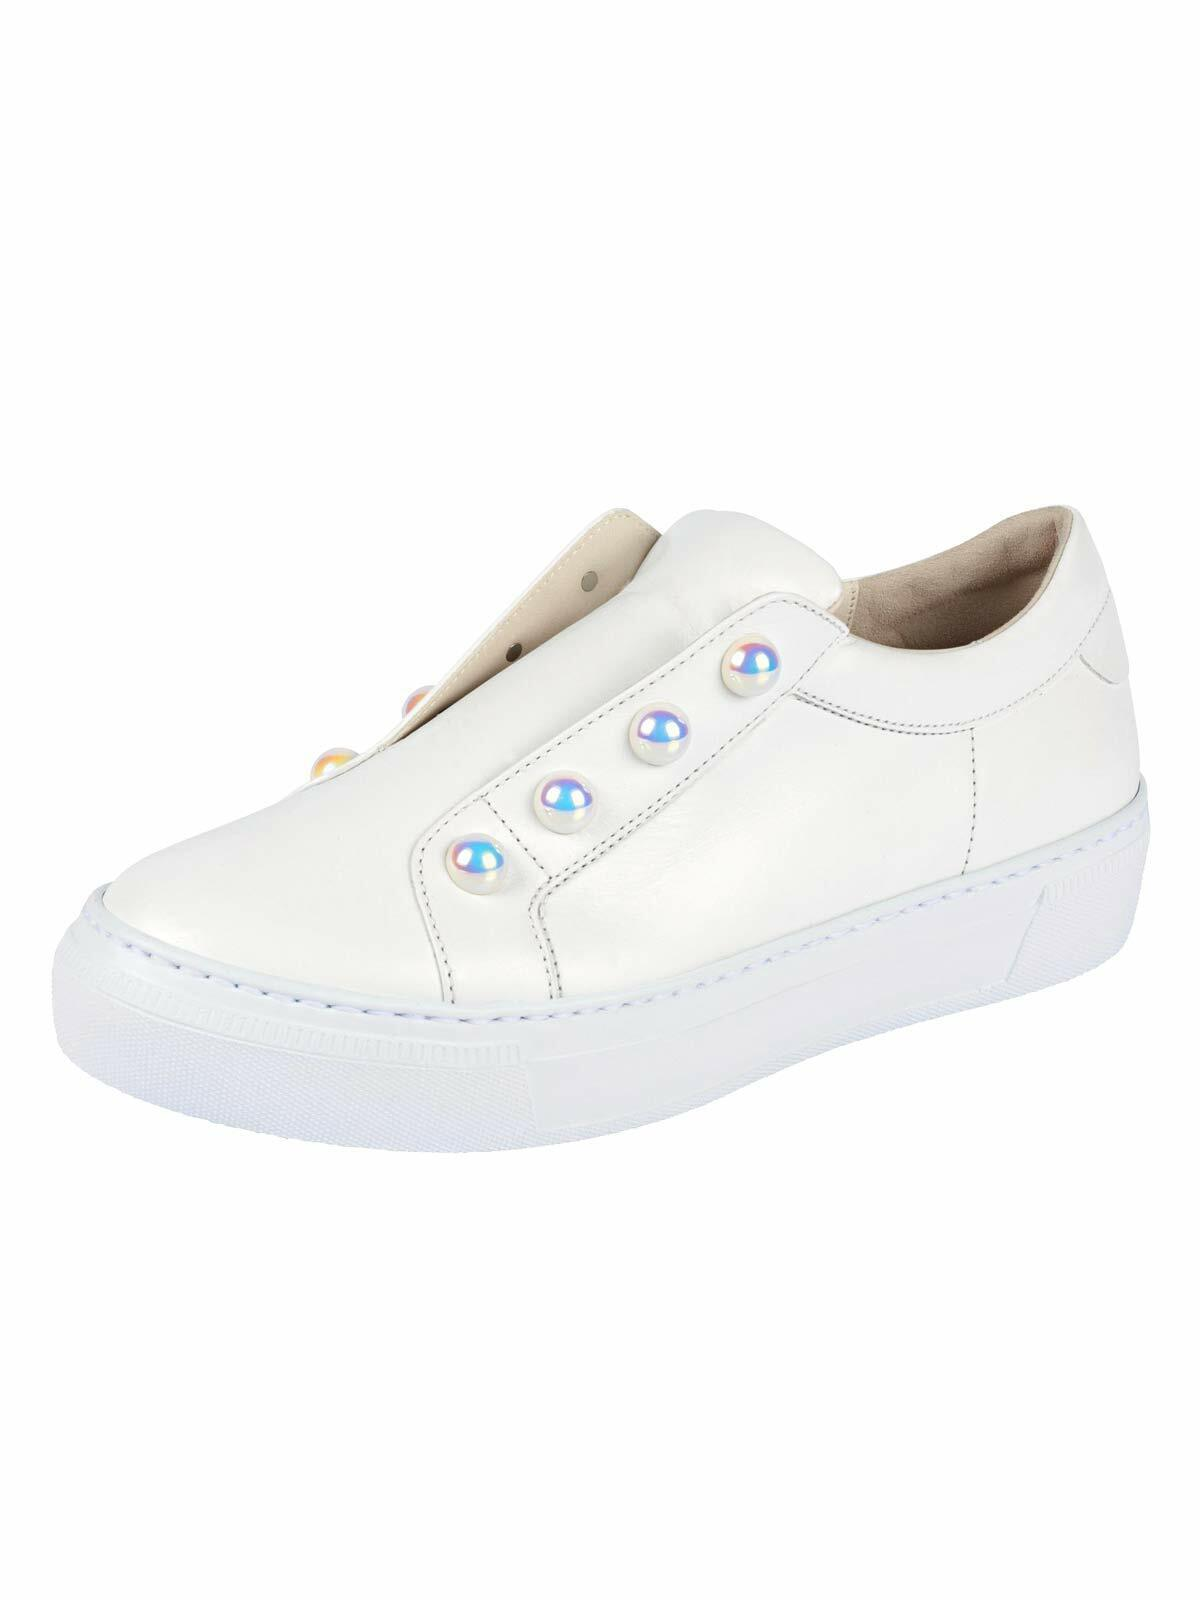 Gabor sport Calfskin with no laces white size 7,5